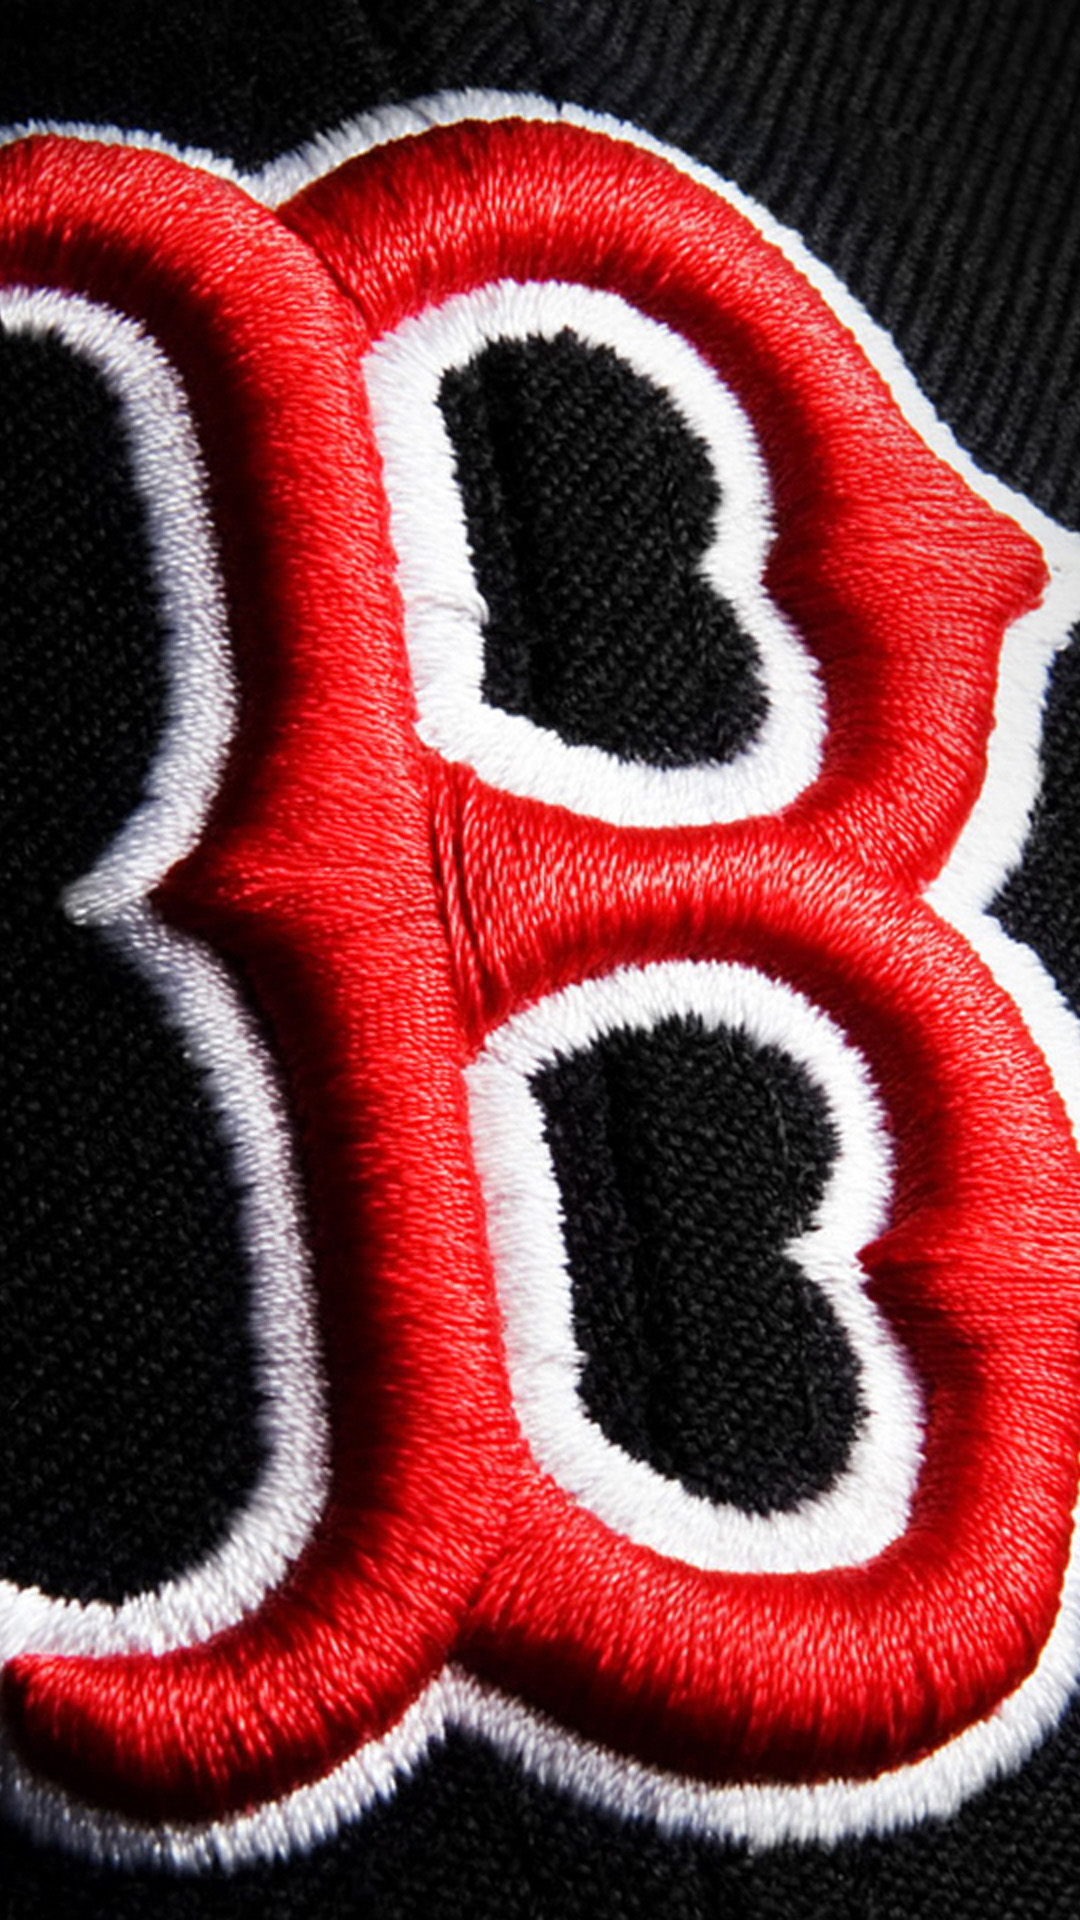 Red Sox IPhone Wallpaper